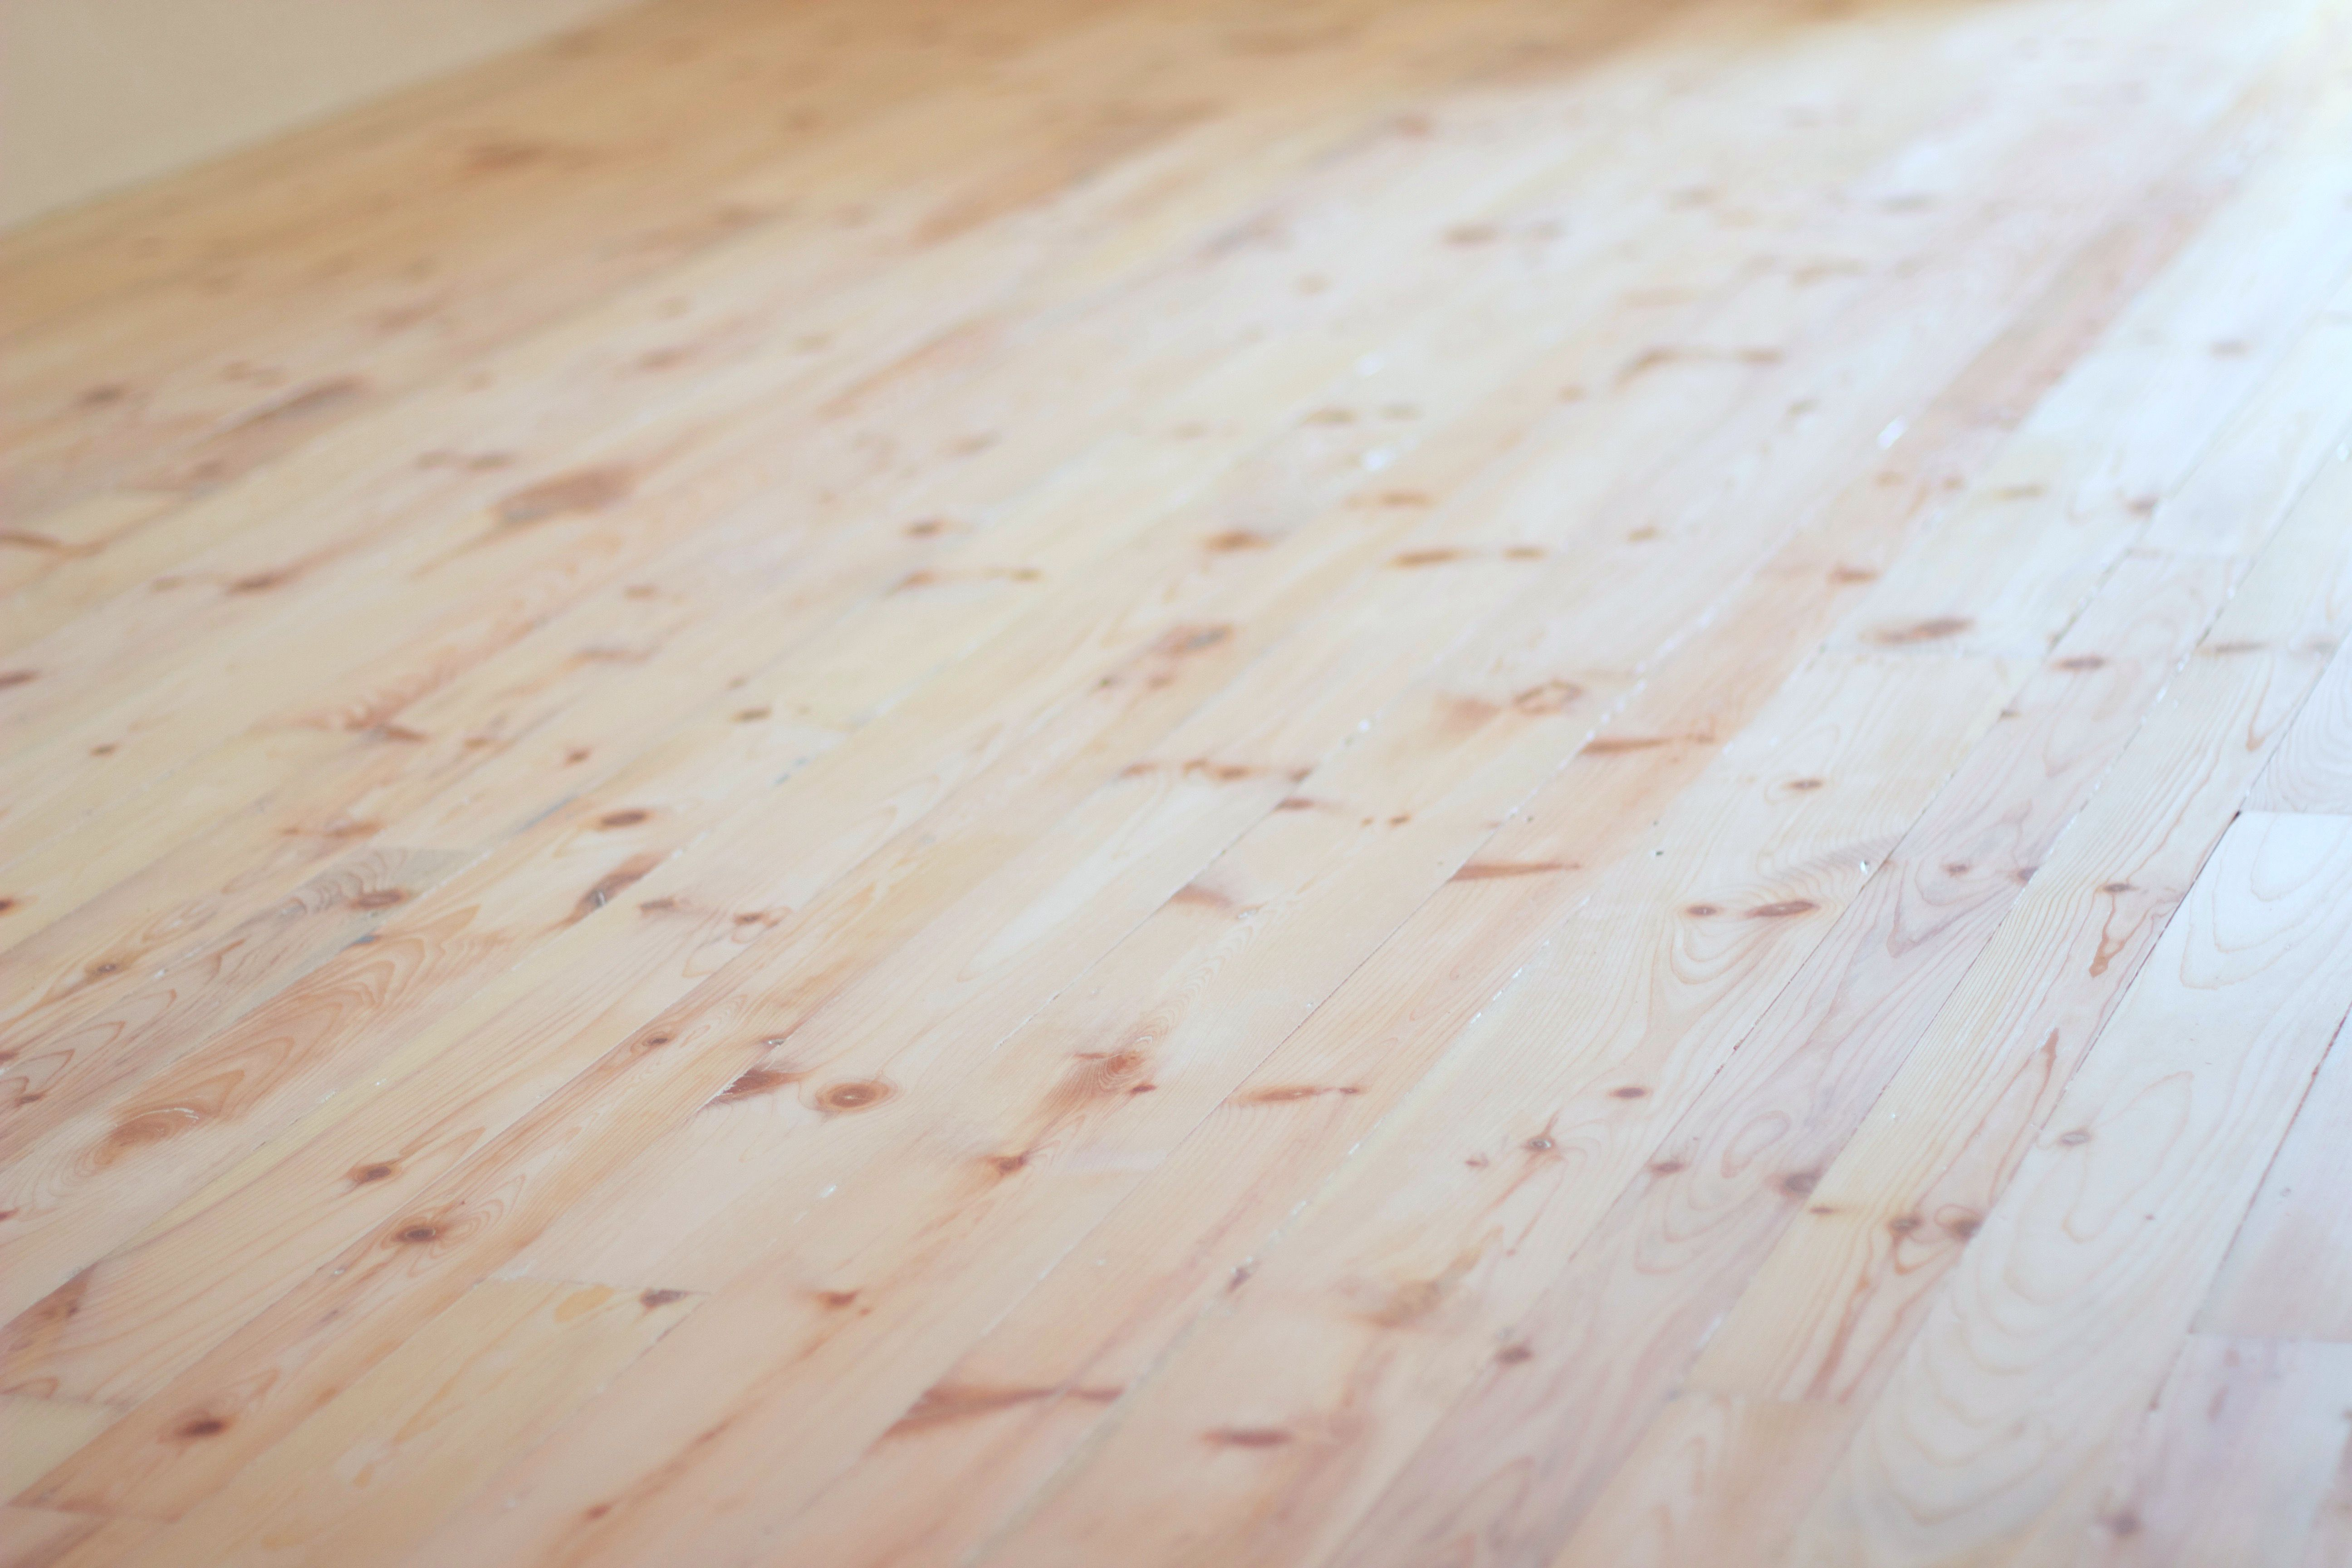 ch hardwood flooring lm view oak natural wood products white kendall floors laminate plank